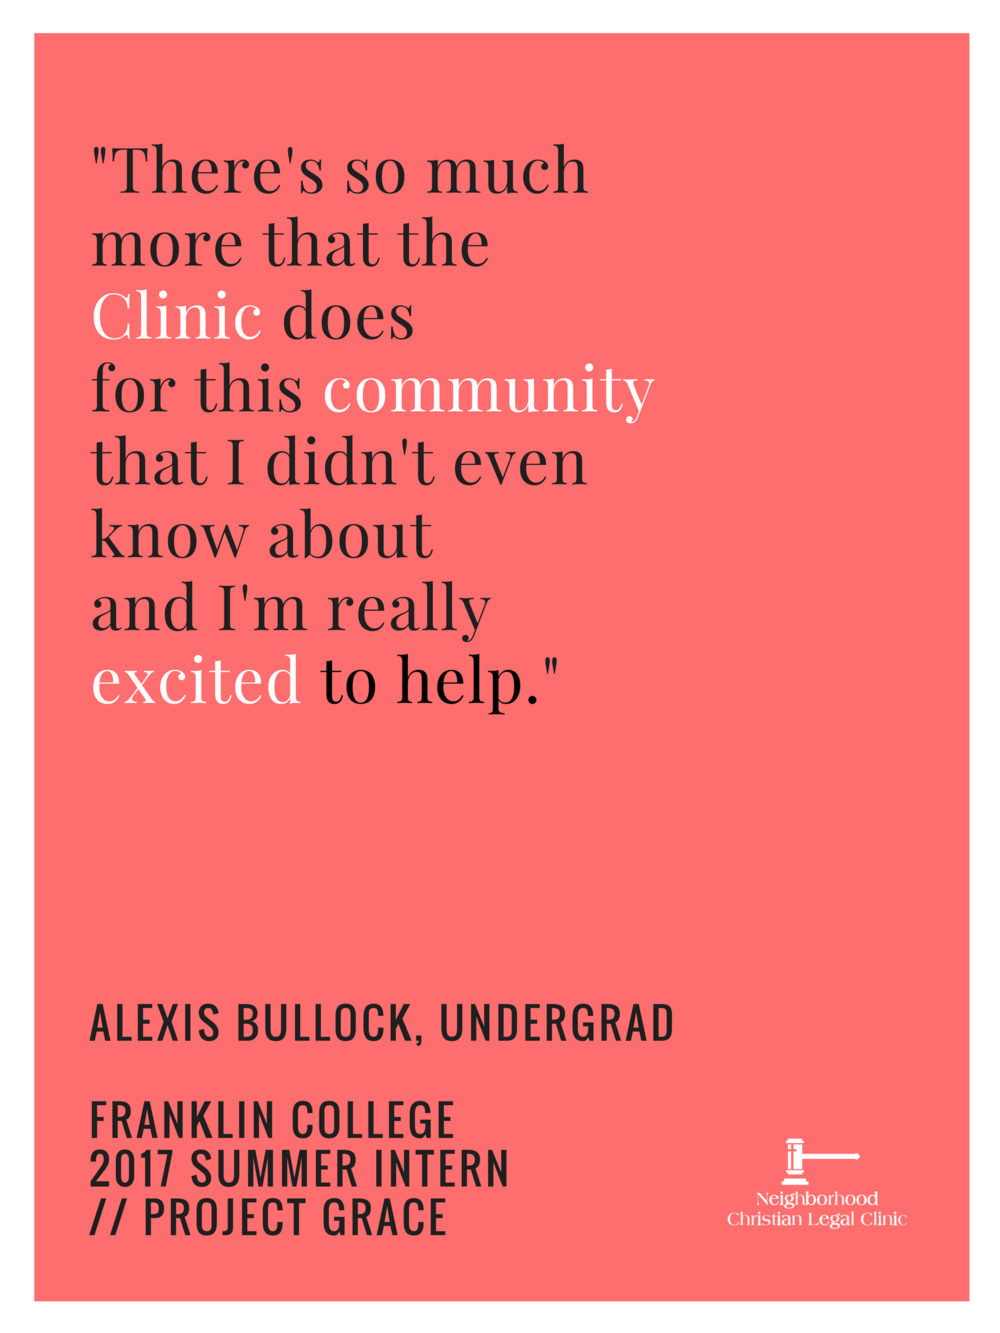 2017 Summer Intern Quote - Alexis Bullock - Canva.png